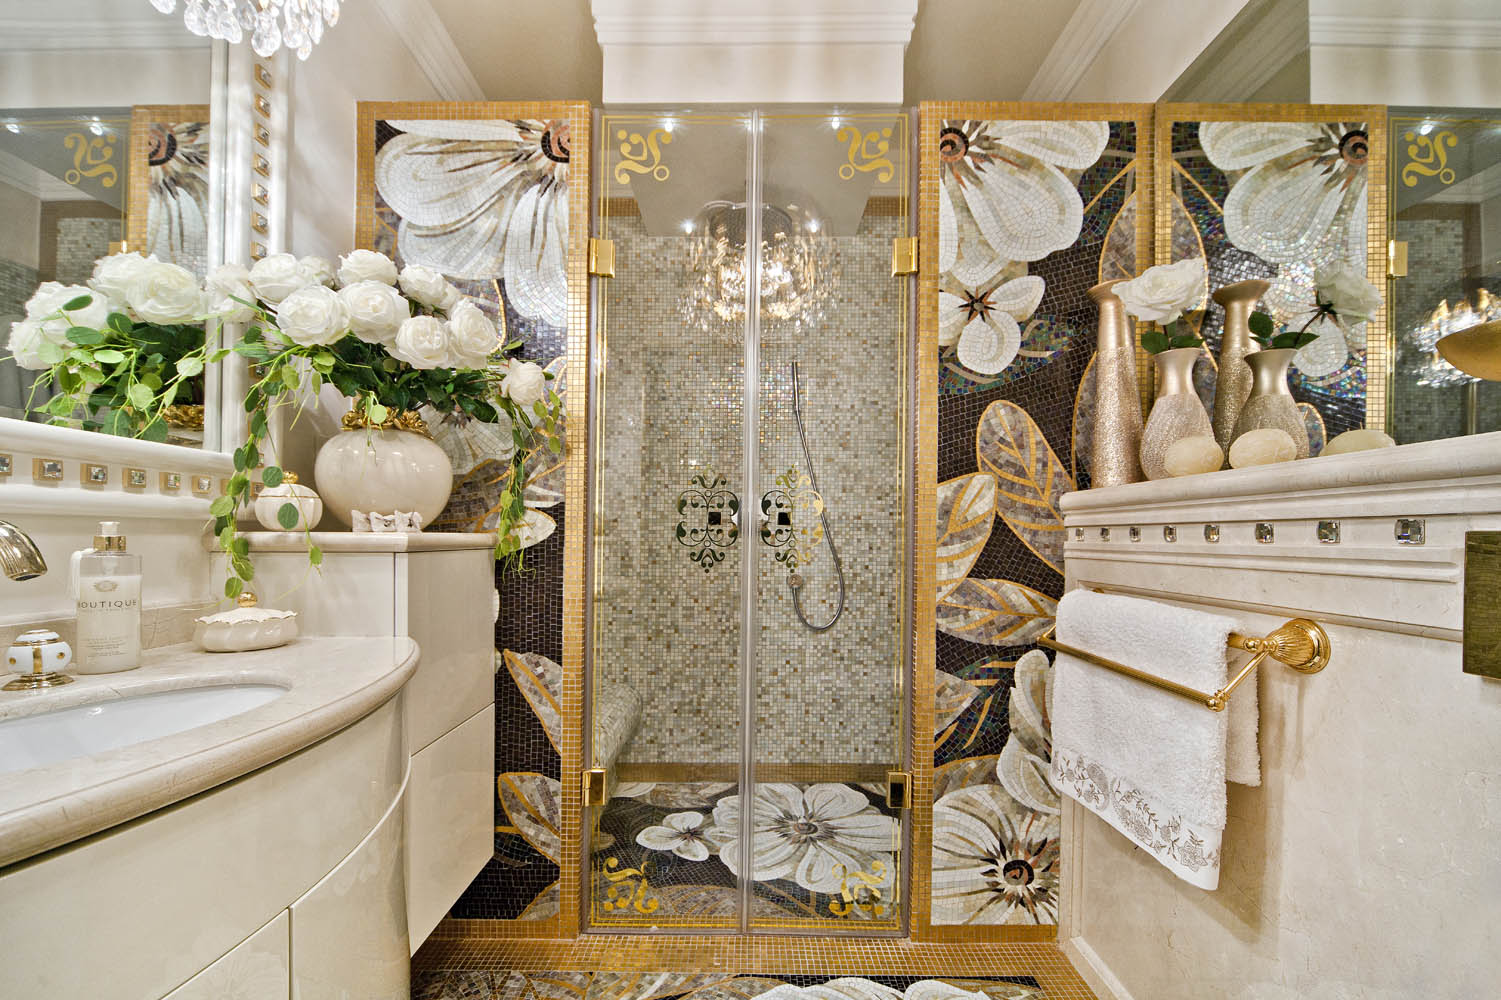 Elegant bathroom in white and gold